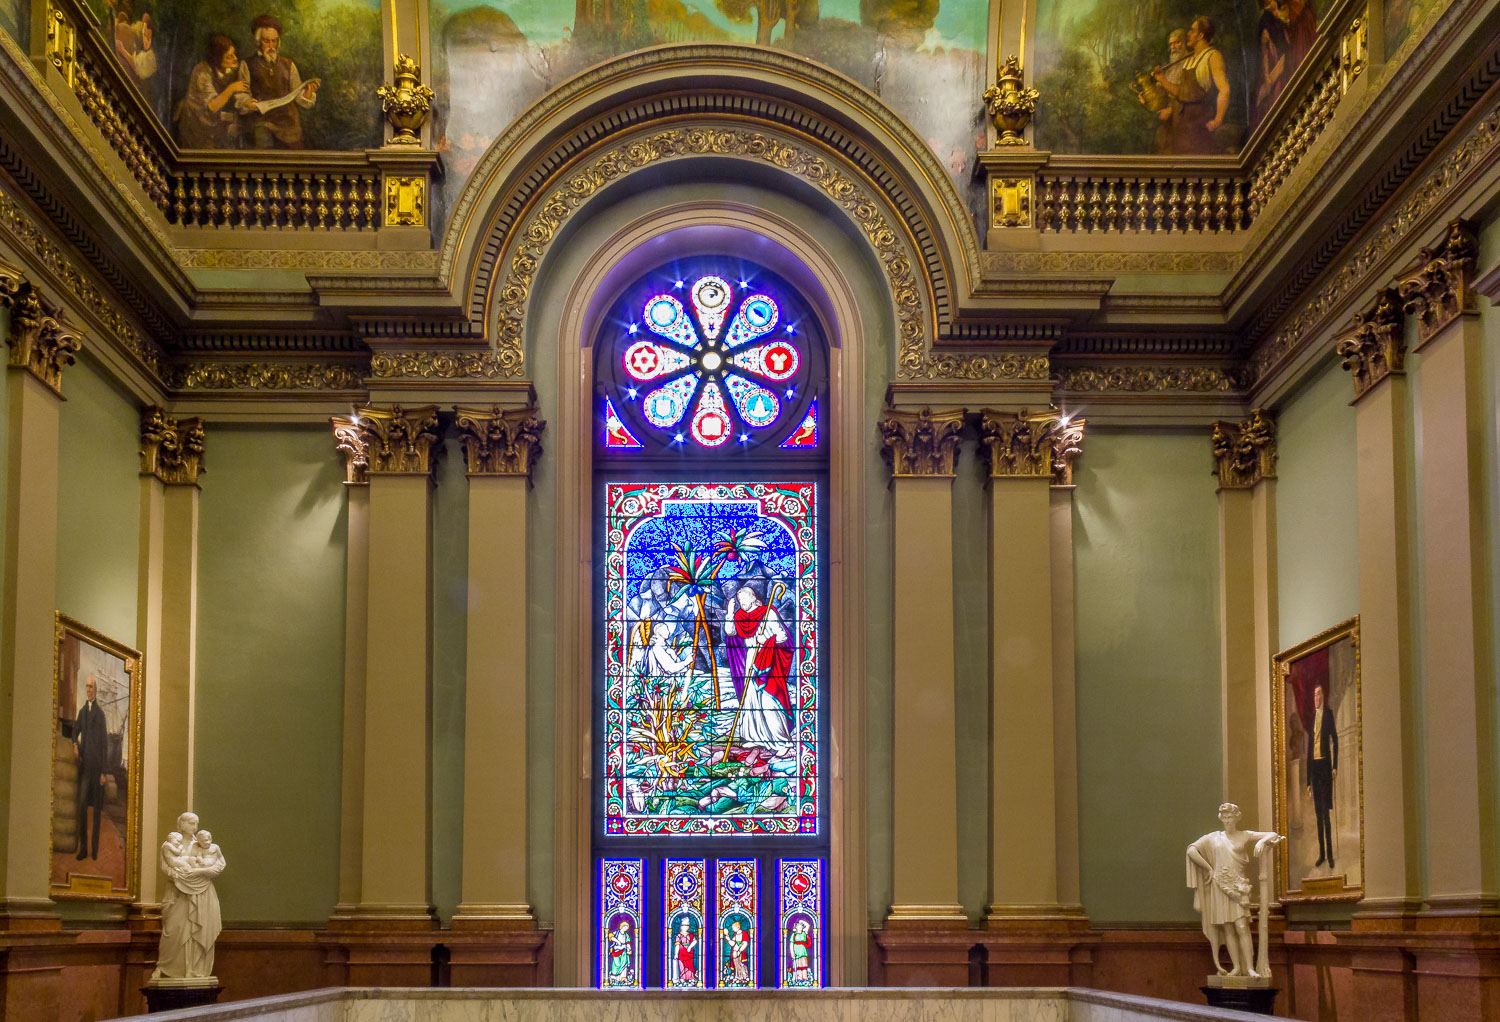 Stained glass window at the Masonic Temple in Philadelphia, Pennsylvania